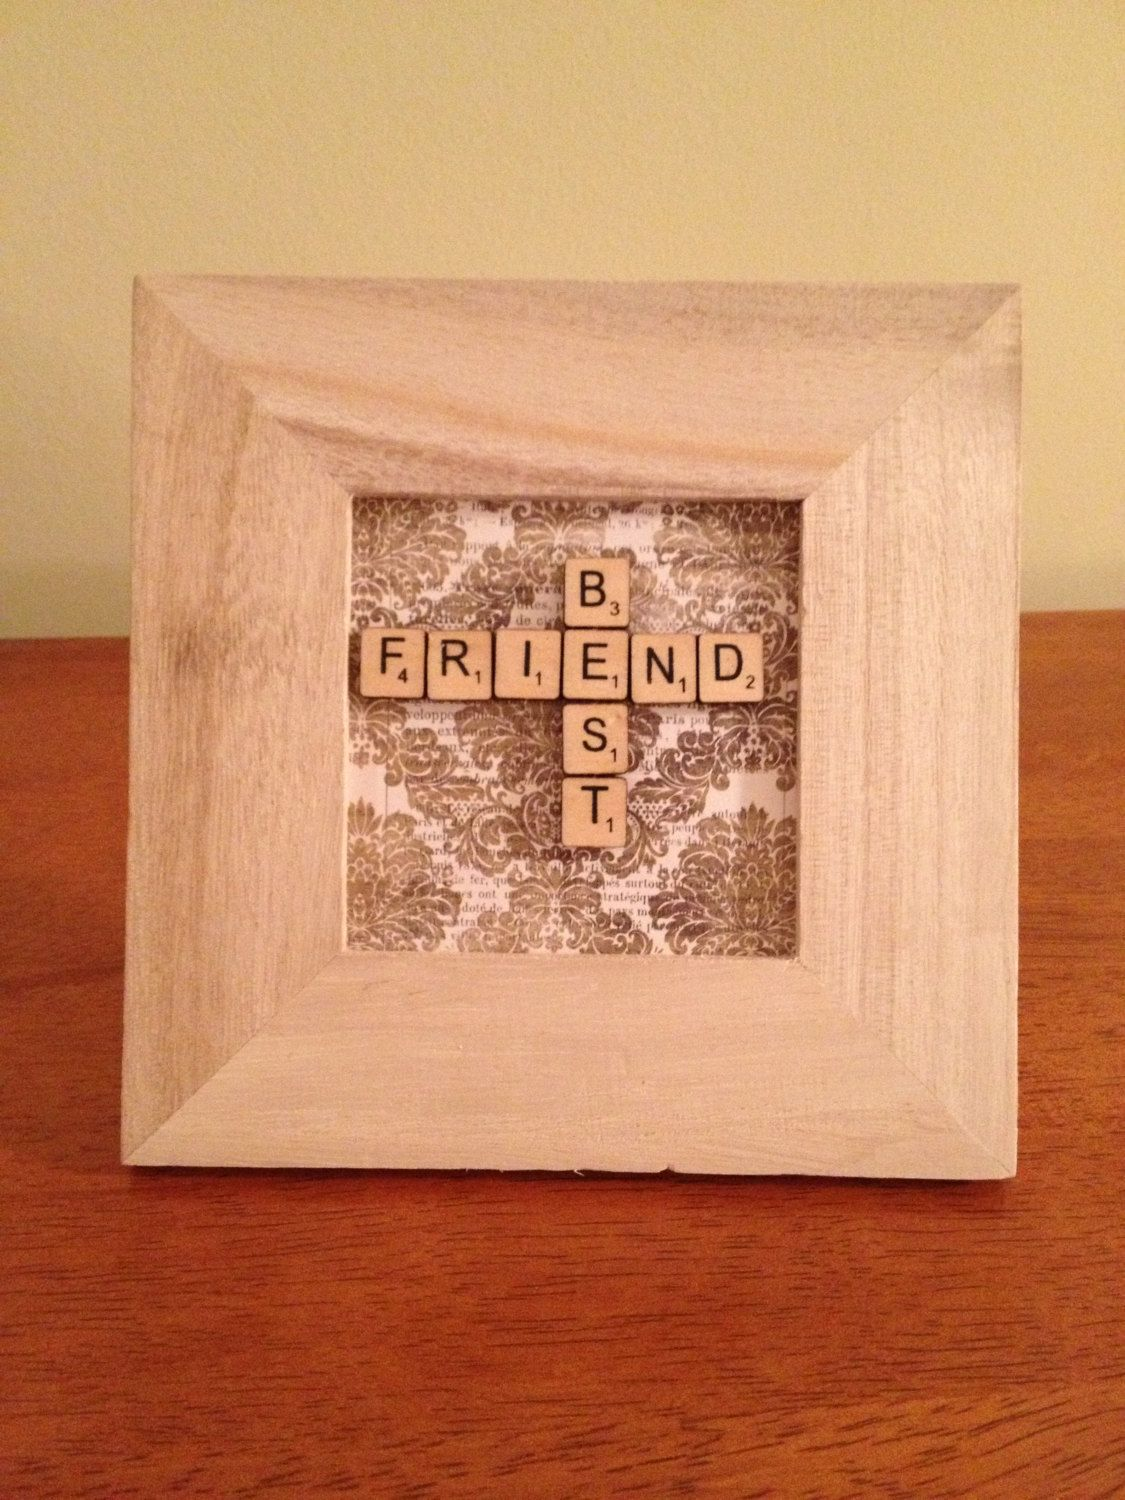 Hand crafted framed best friend miniature scrabble tiles you could totally do this yourself its a cute gift idea you could add your name and your best friends name to make it more personal solutioingenieria Choice Image